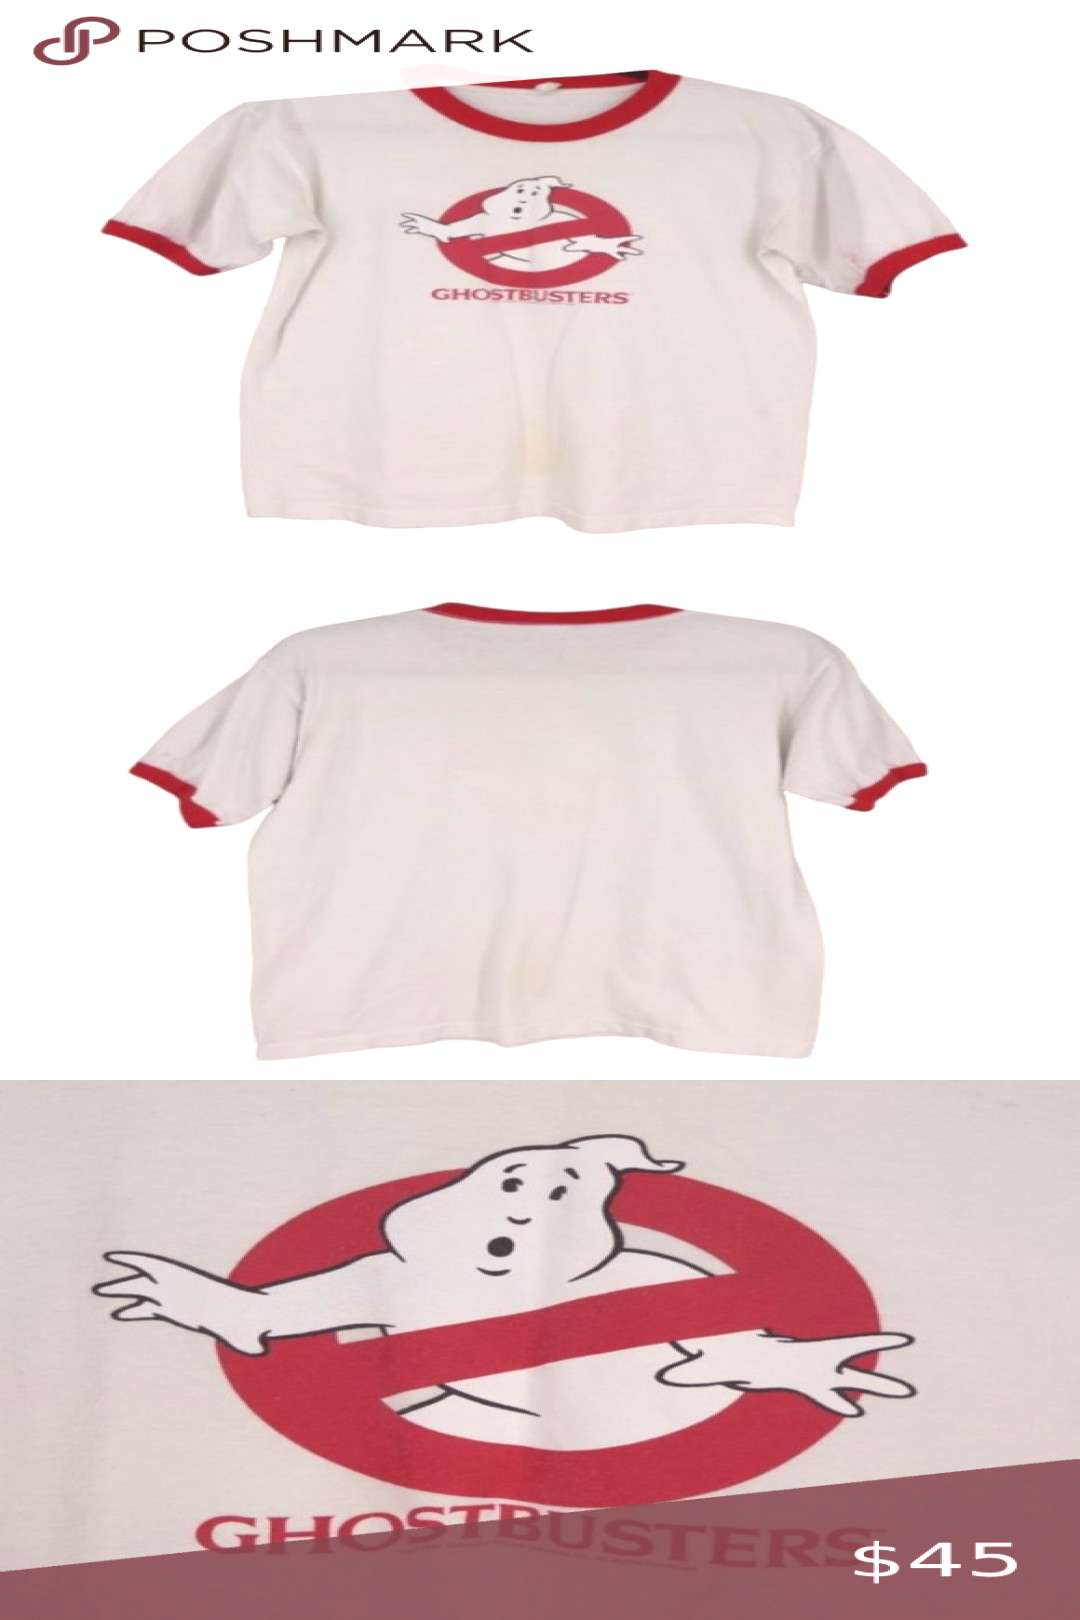 Vintage Ghostbusters Movie 1984 Ringer T-Shirt Vintage Ringer T-Shirt Mens Mediu...#ghostbusters